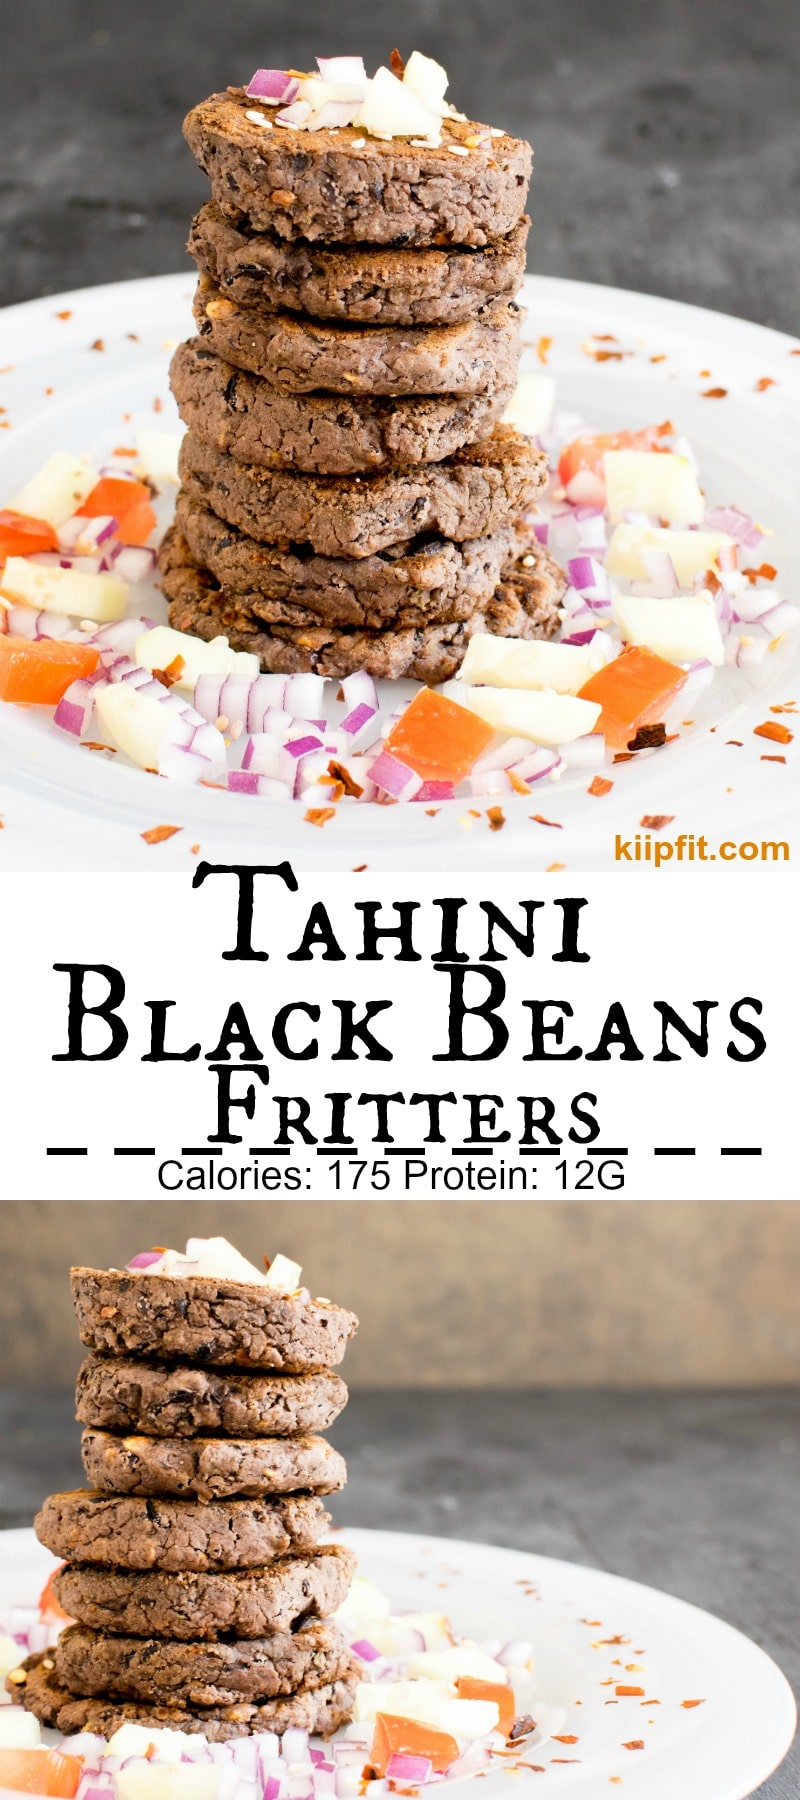 Tahini Black Beans Fritters are scrumptious yet nutritious everyday snacks or breakfast. These fritters are versatile enough to be consumed as patties over your choice of salad. These fritters taste amazing as sandwiches. However, I enjoy these fritters as is with a vegan yogurt base dip [ vegan + GF + nut free + flourless ] kiipfit.com